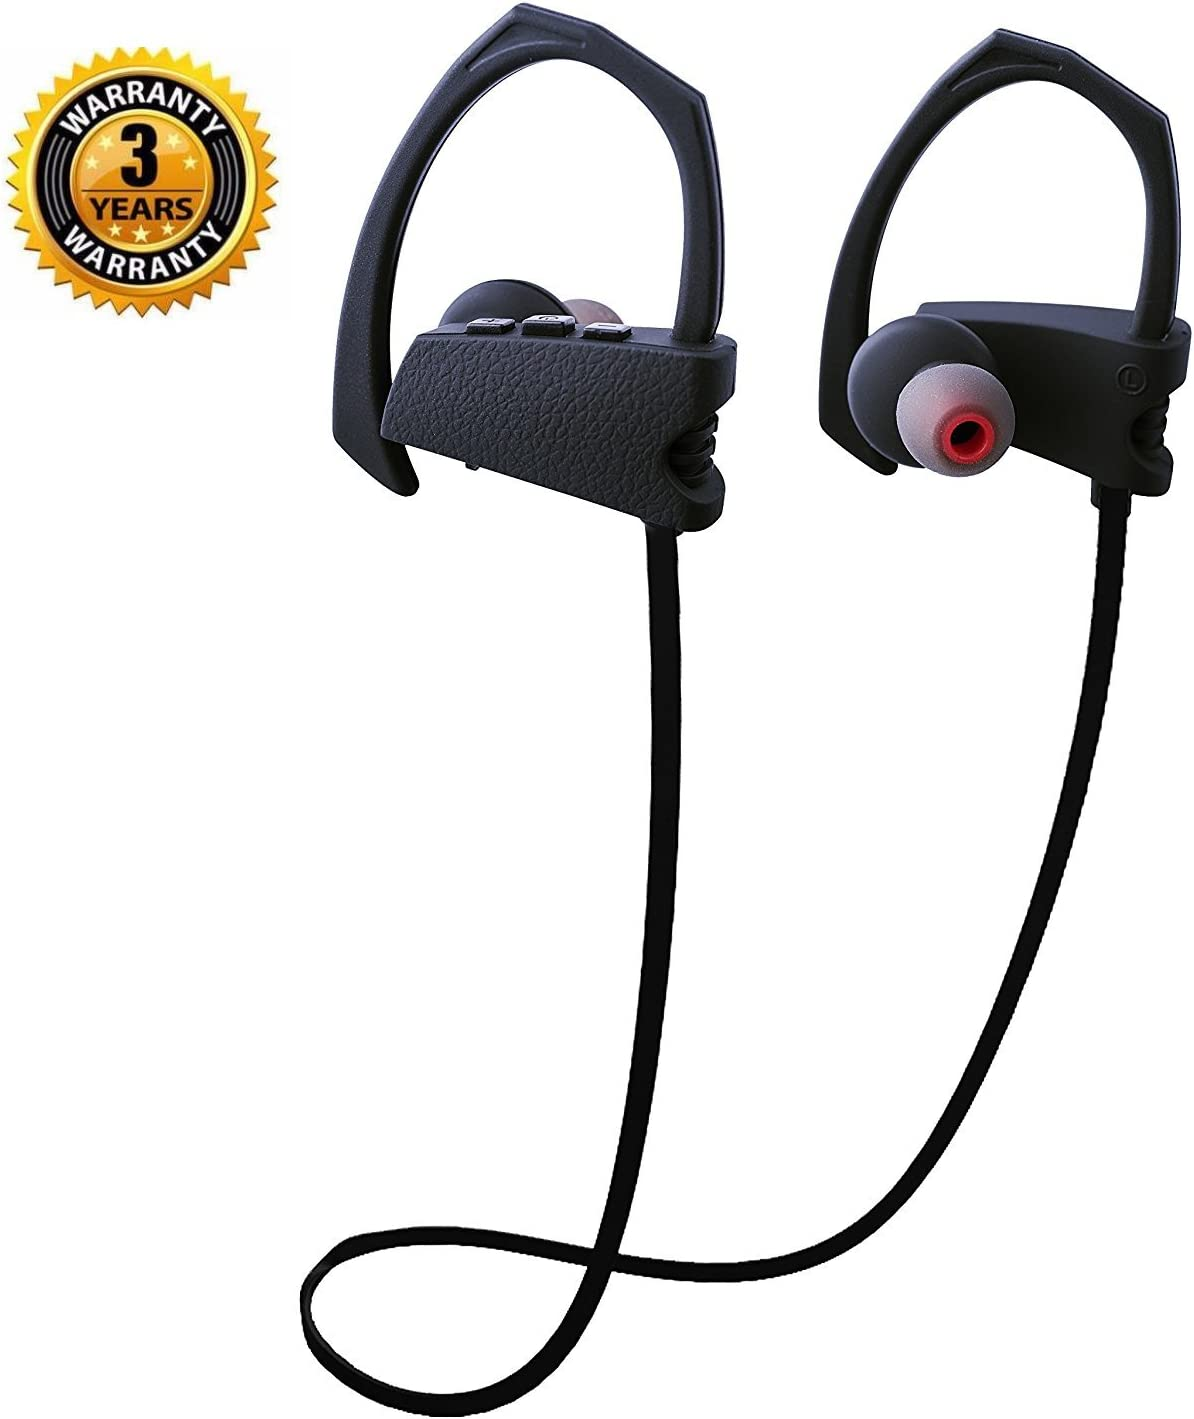 Amazon Com Bluetooth Headphones Wireless Earphones Ipx5 Waterproof Heavy Bass Hd Stereo Earbuds With Mic Noise Isolated Headsets For Iphone7 S7 Ipad Good Choice For Music Lover